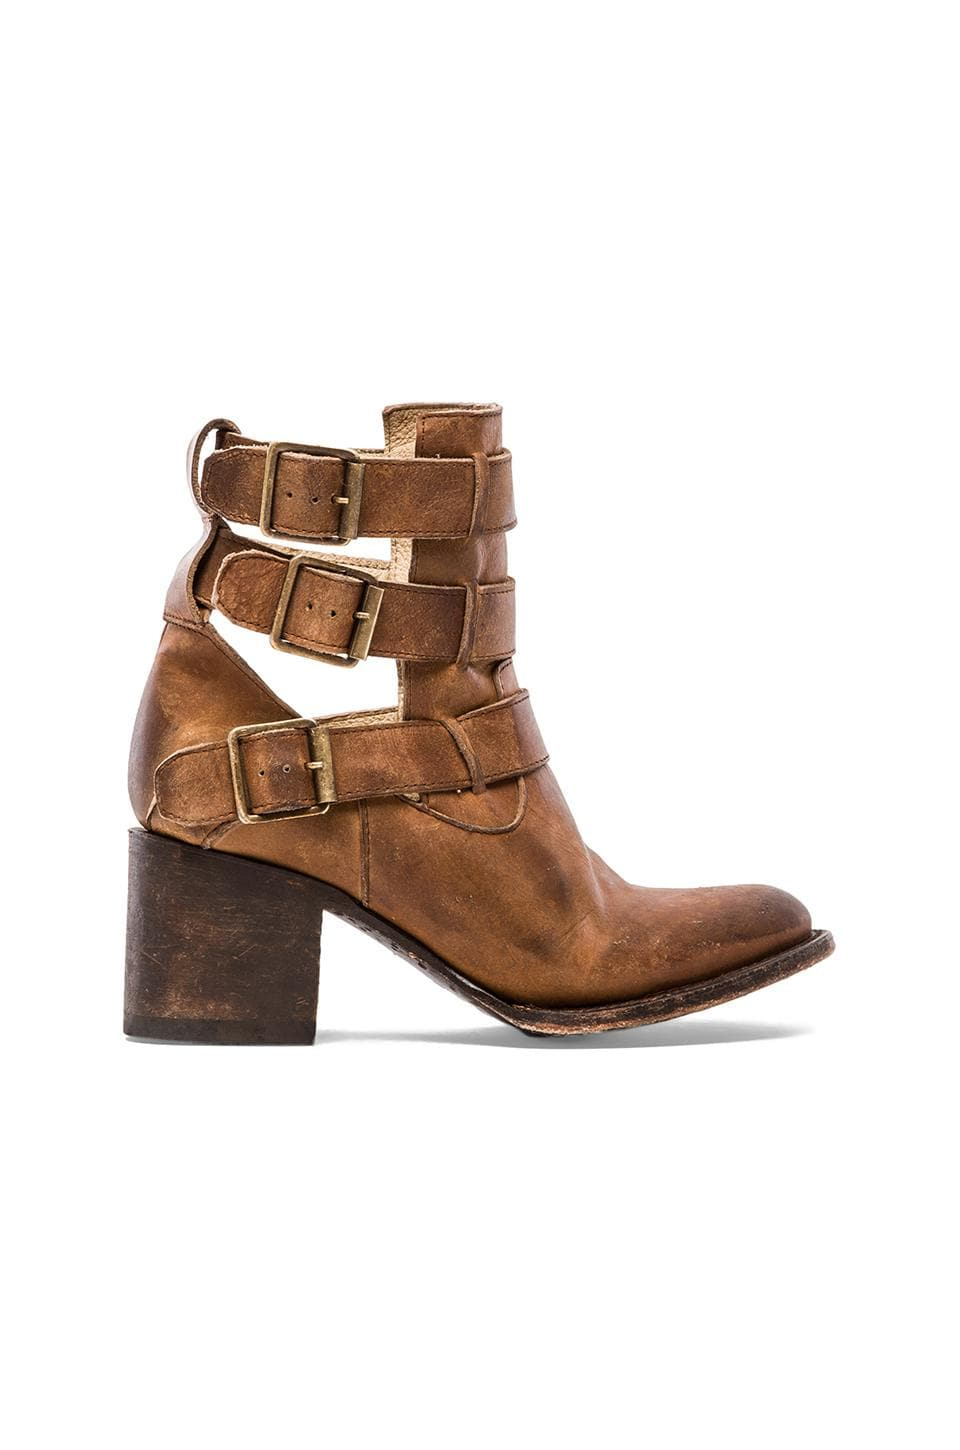 Freebird by Steven Rollin Bootie in Tan